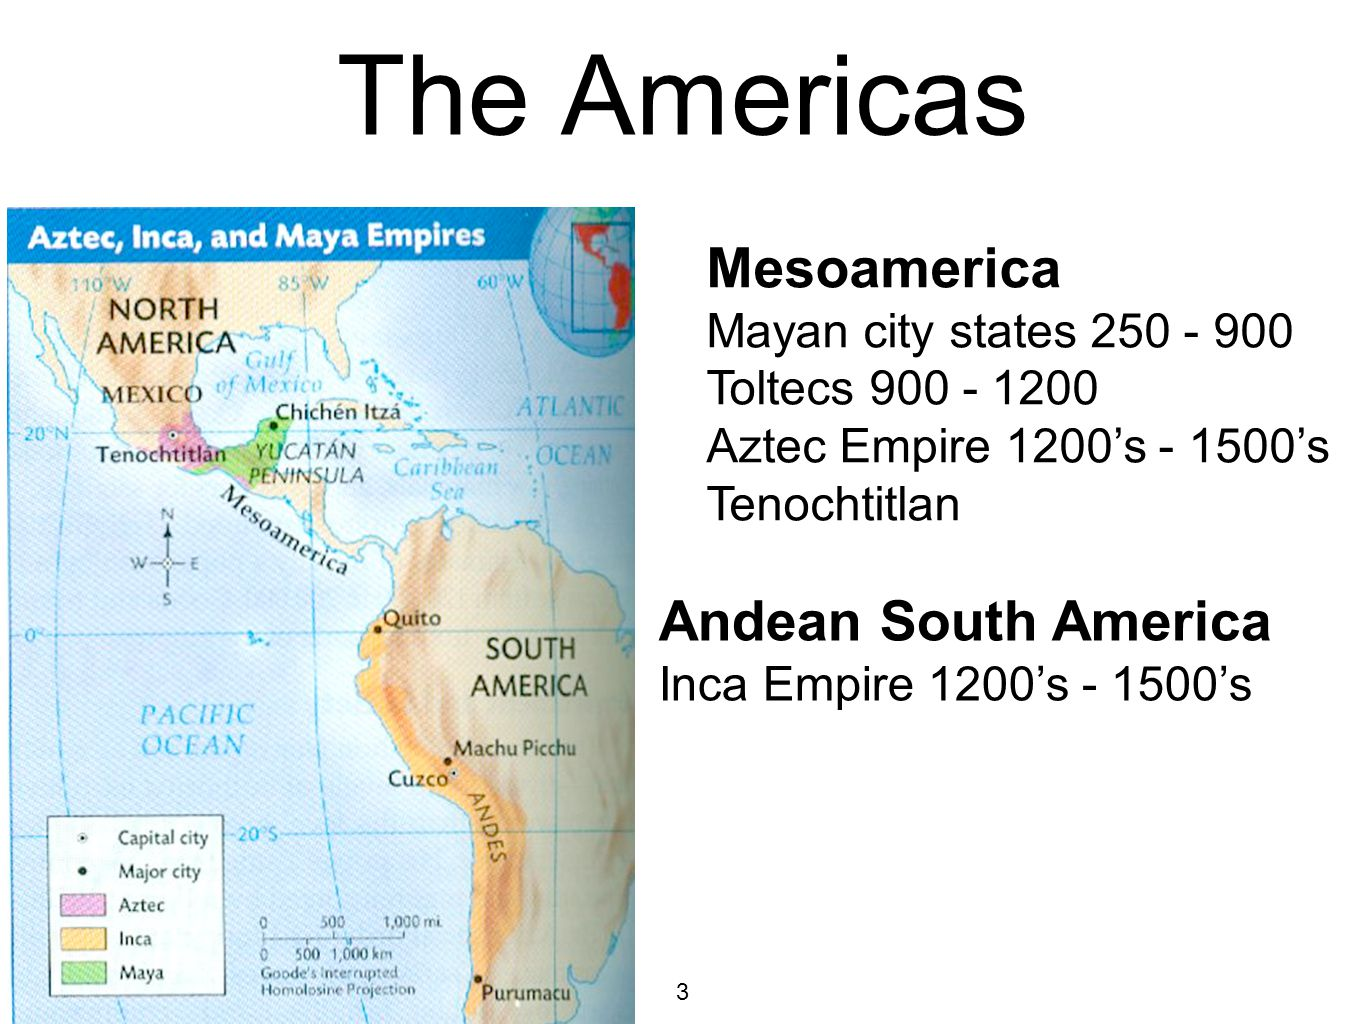 3 The Americas Mesoamerica Mayan city states Toltecs Aztec Empire 1200's 's Tenochtitlan Andean South America Inca Empire 1200's 's